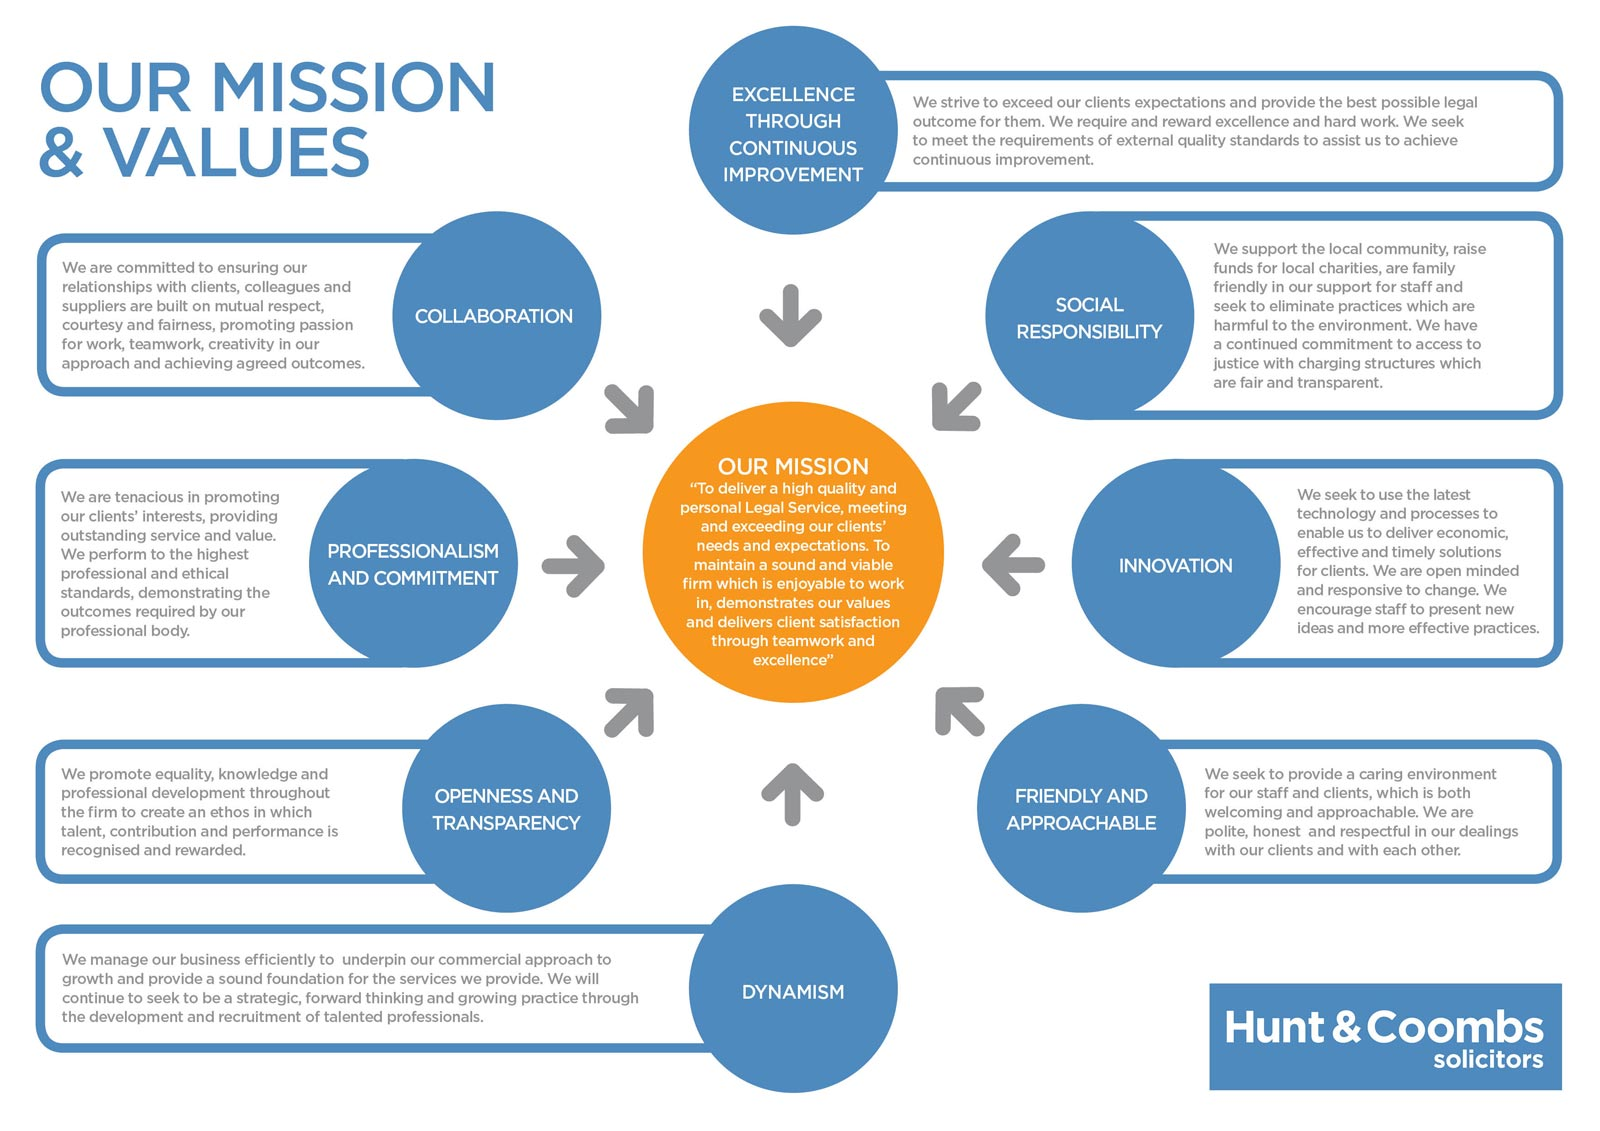 Hunt & Coombs Solicitors Mission & Values